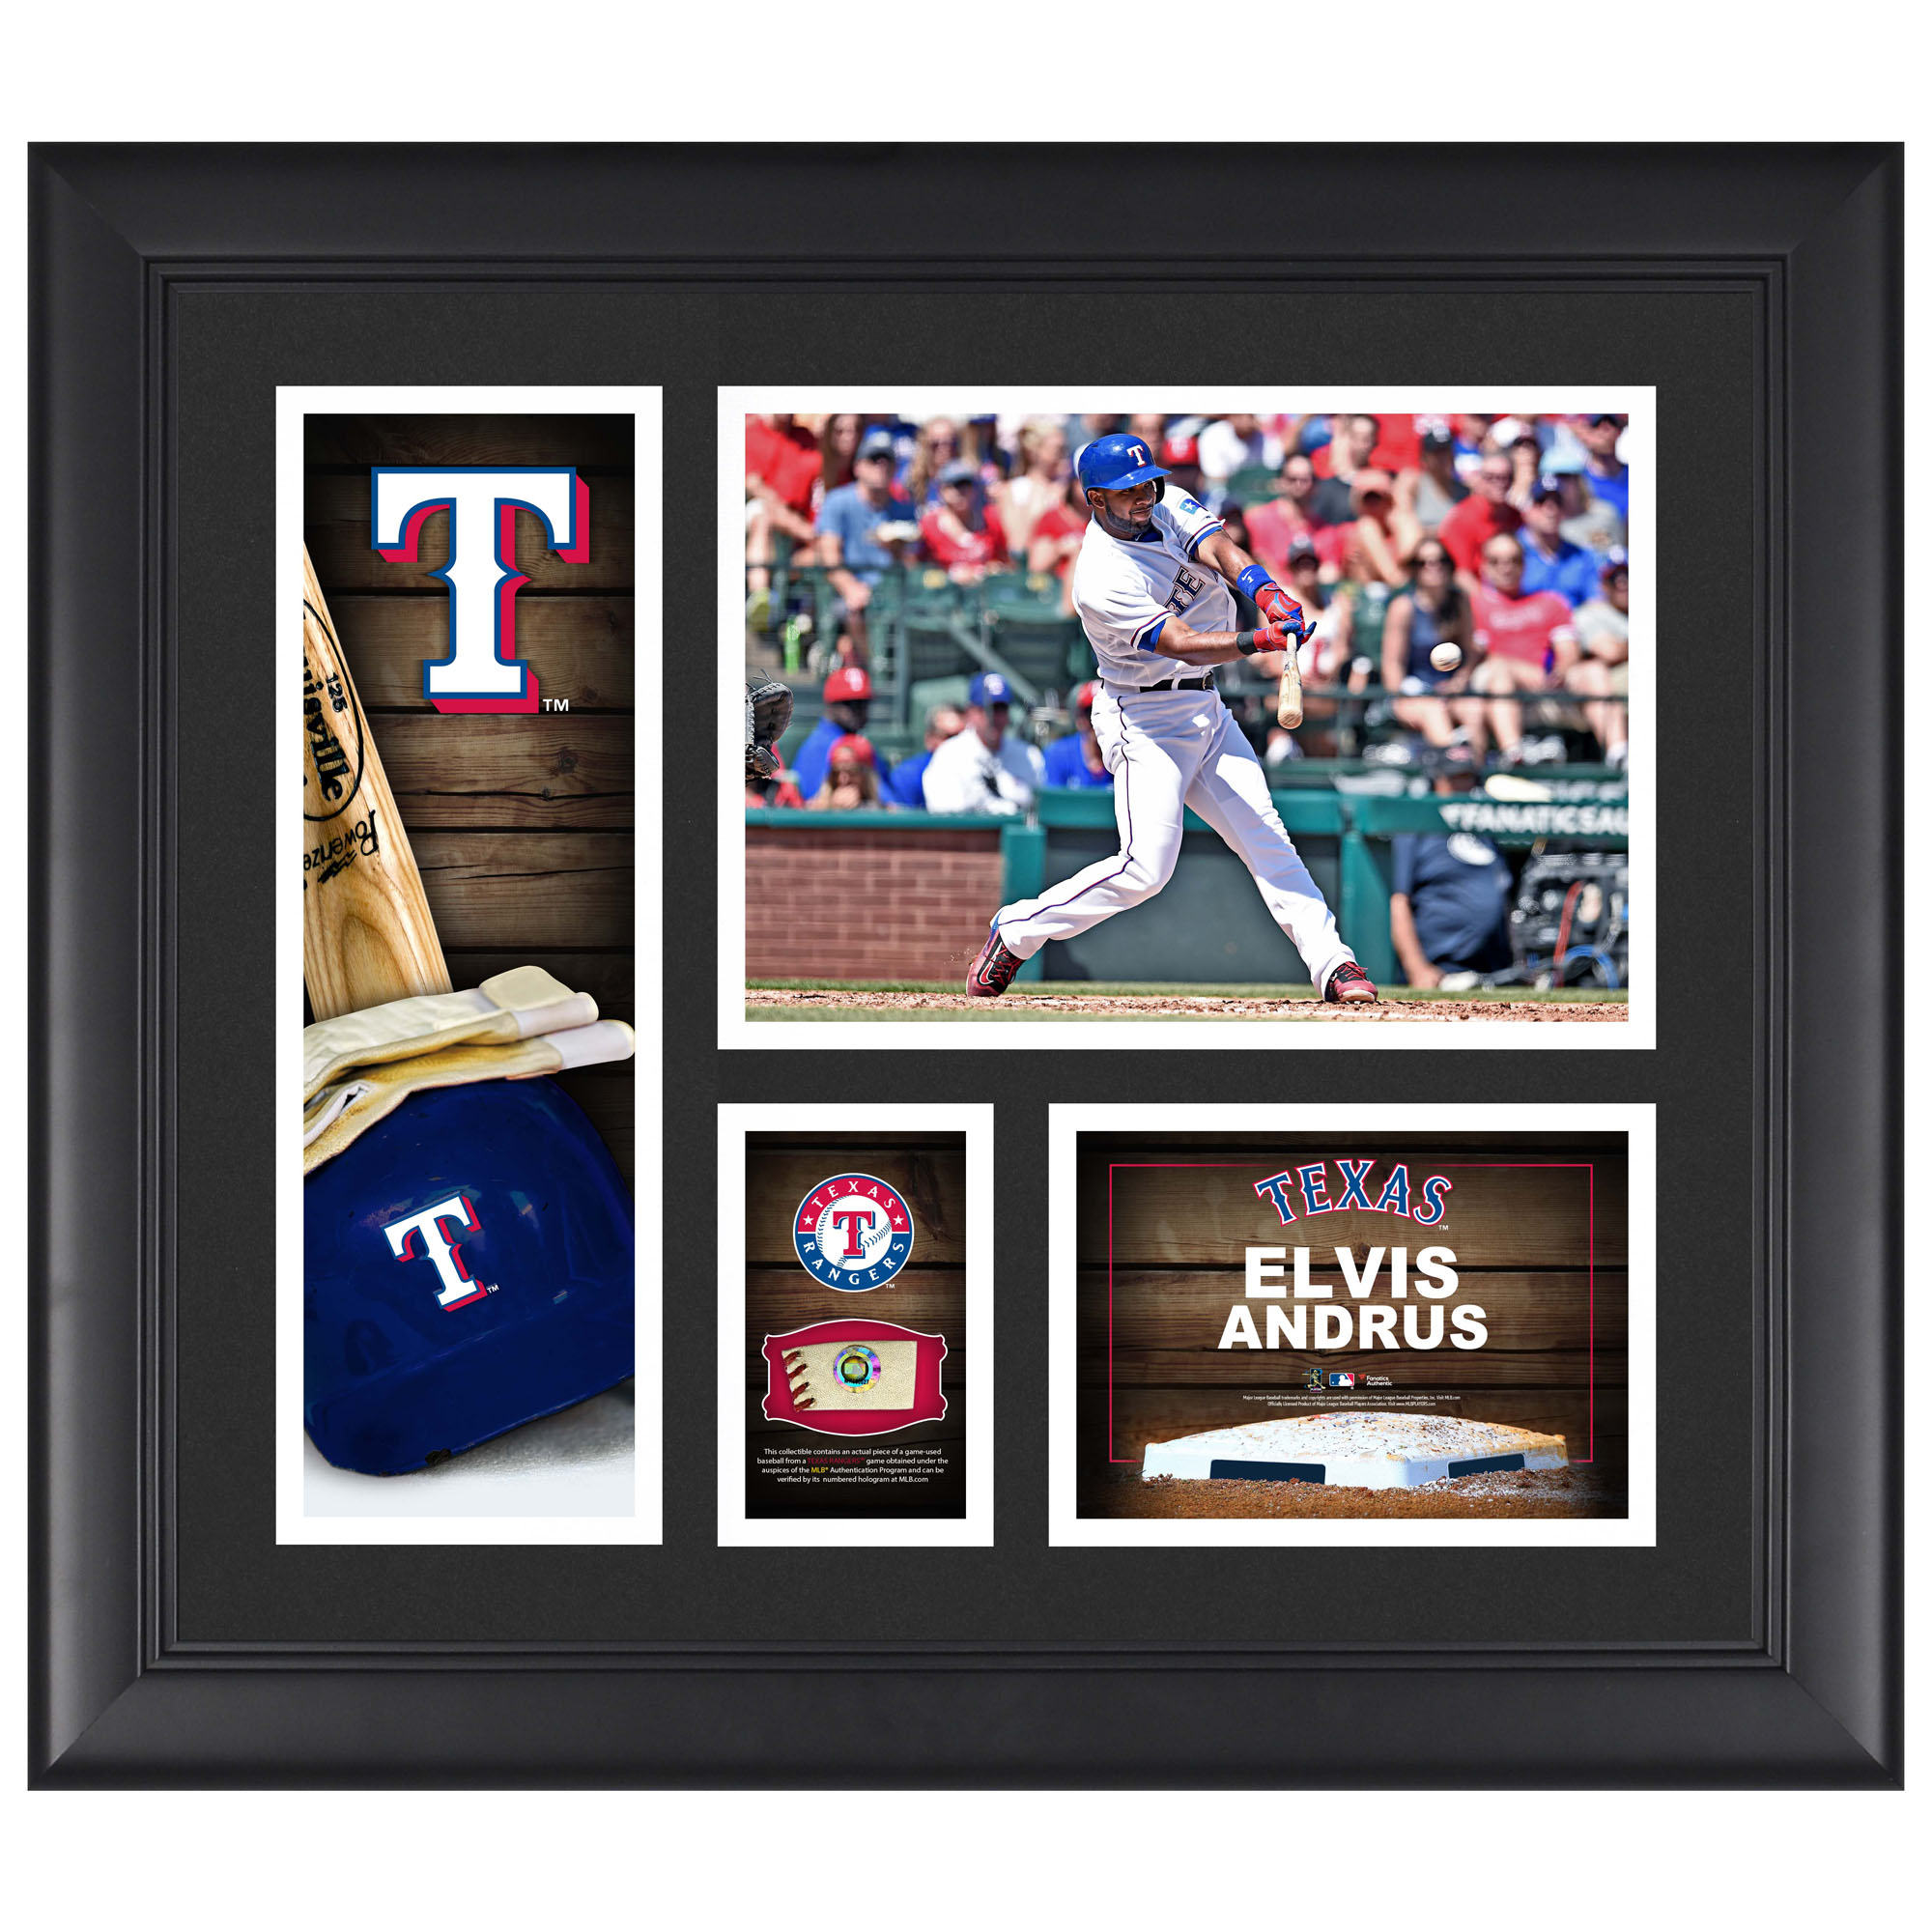 "Elvis Andrus Texas Rangers Framed 15"" x 17"" Player Collage with a Piece of Game-Used Ball"